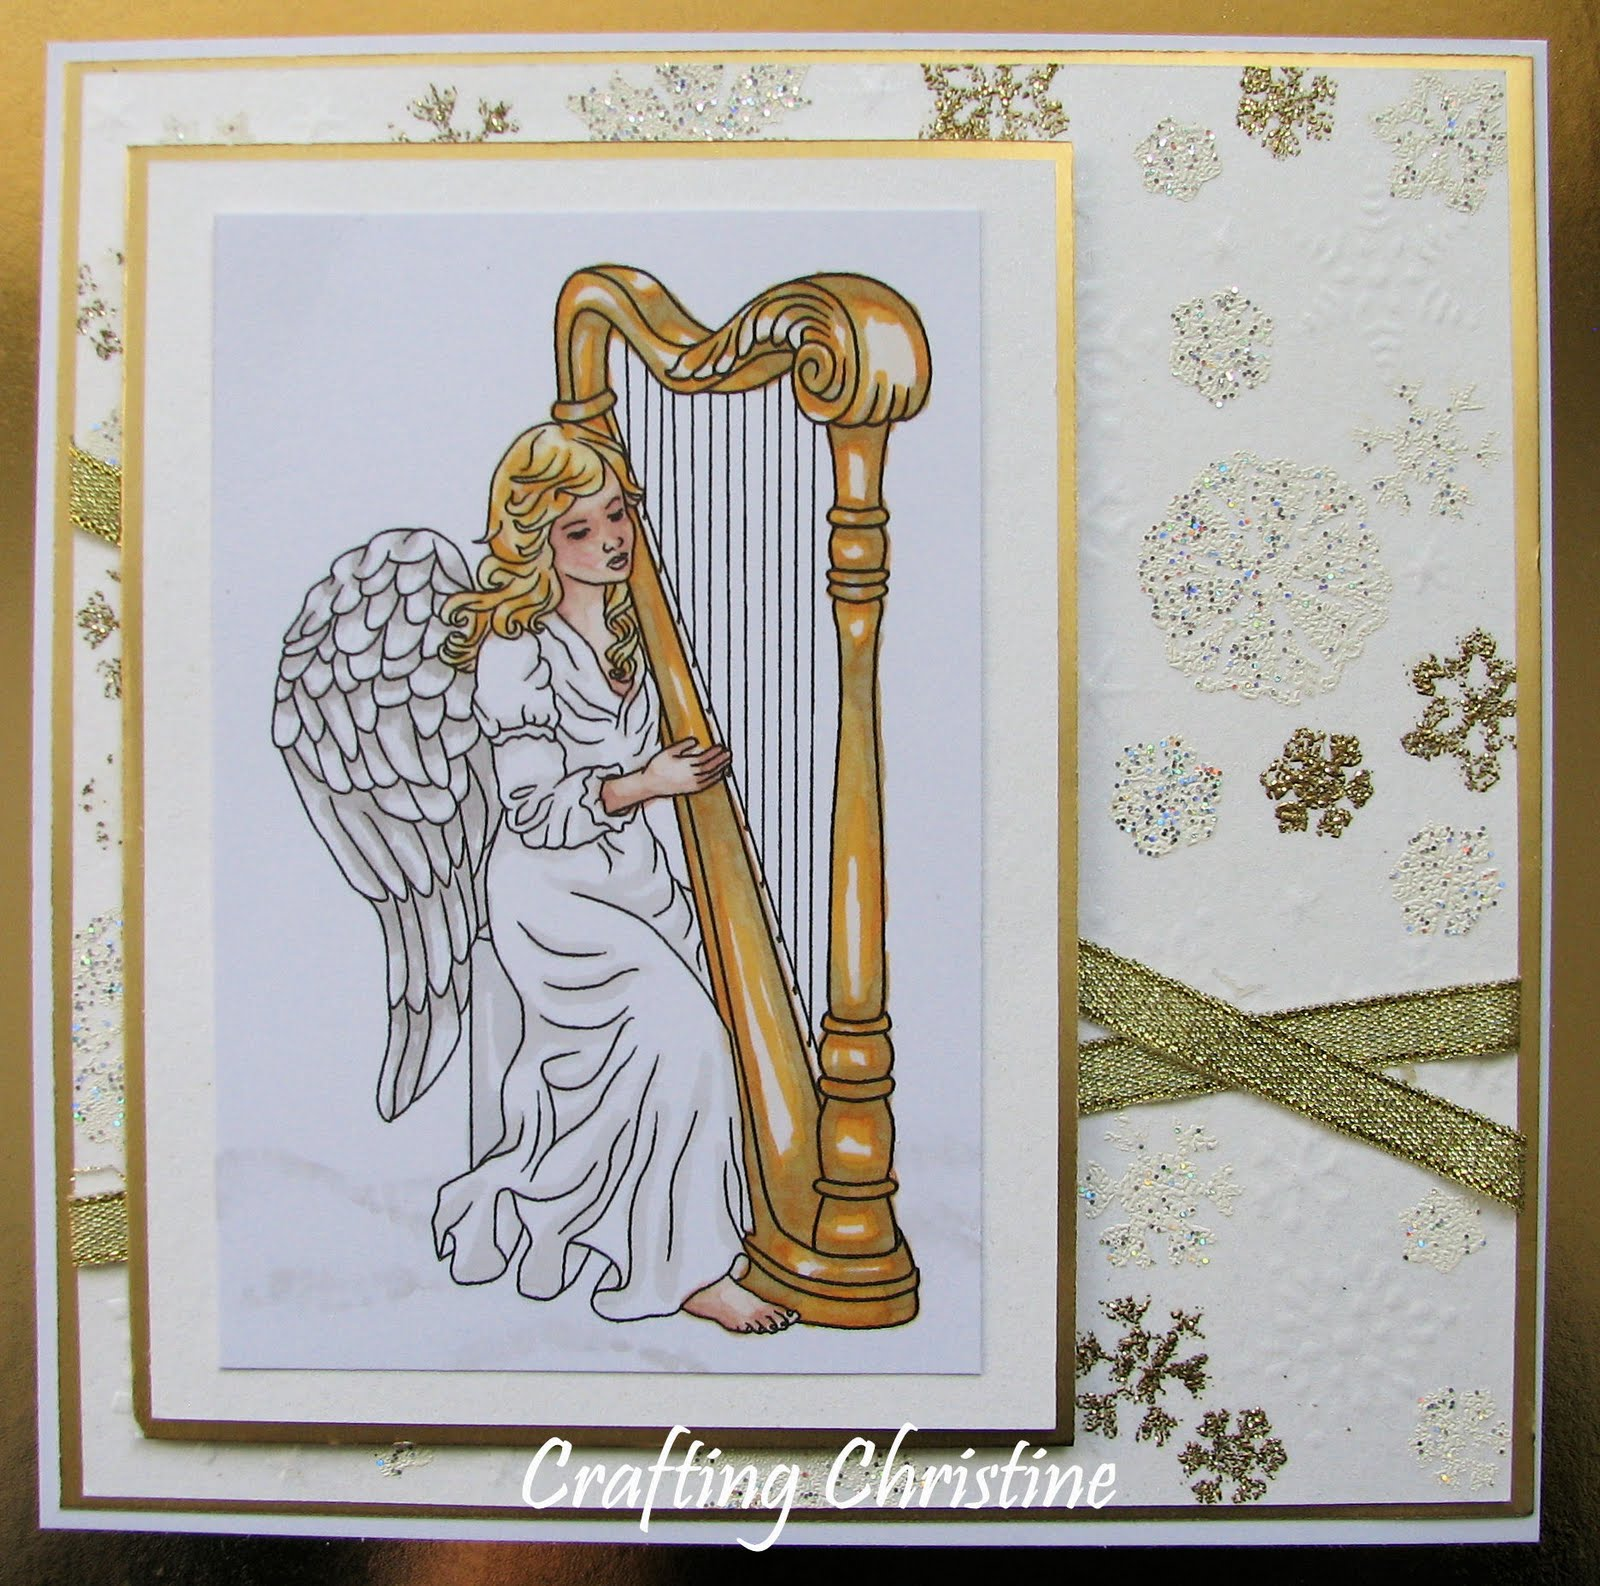 I decided to work with the beautifully elegant 'Angel with Harp' image from